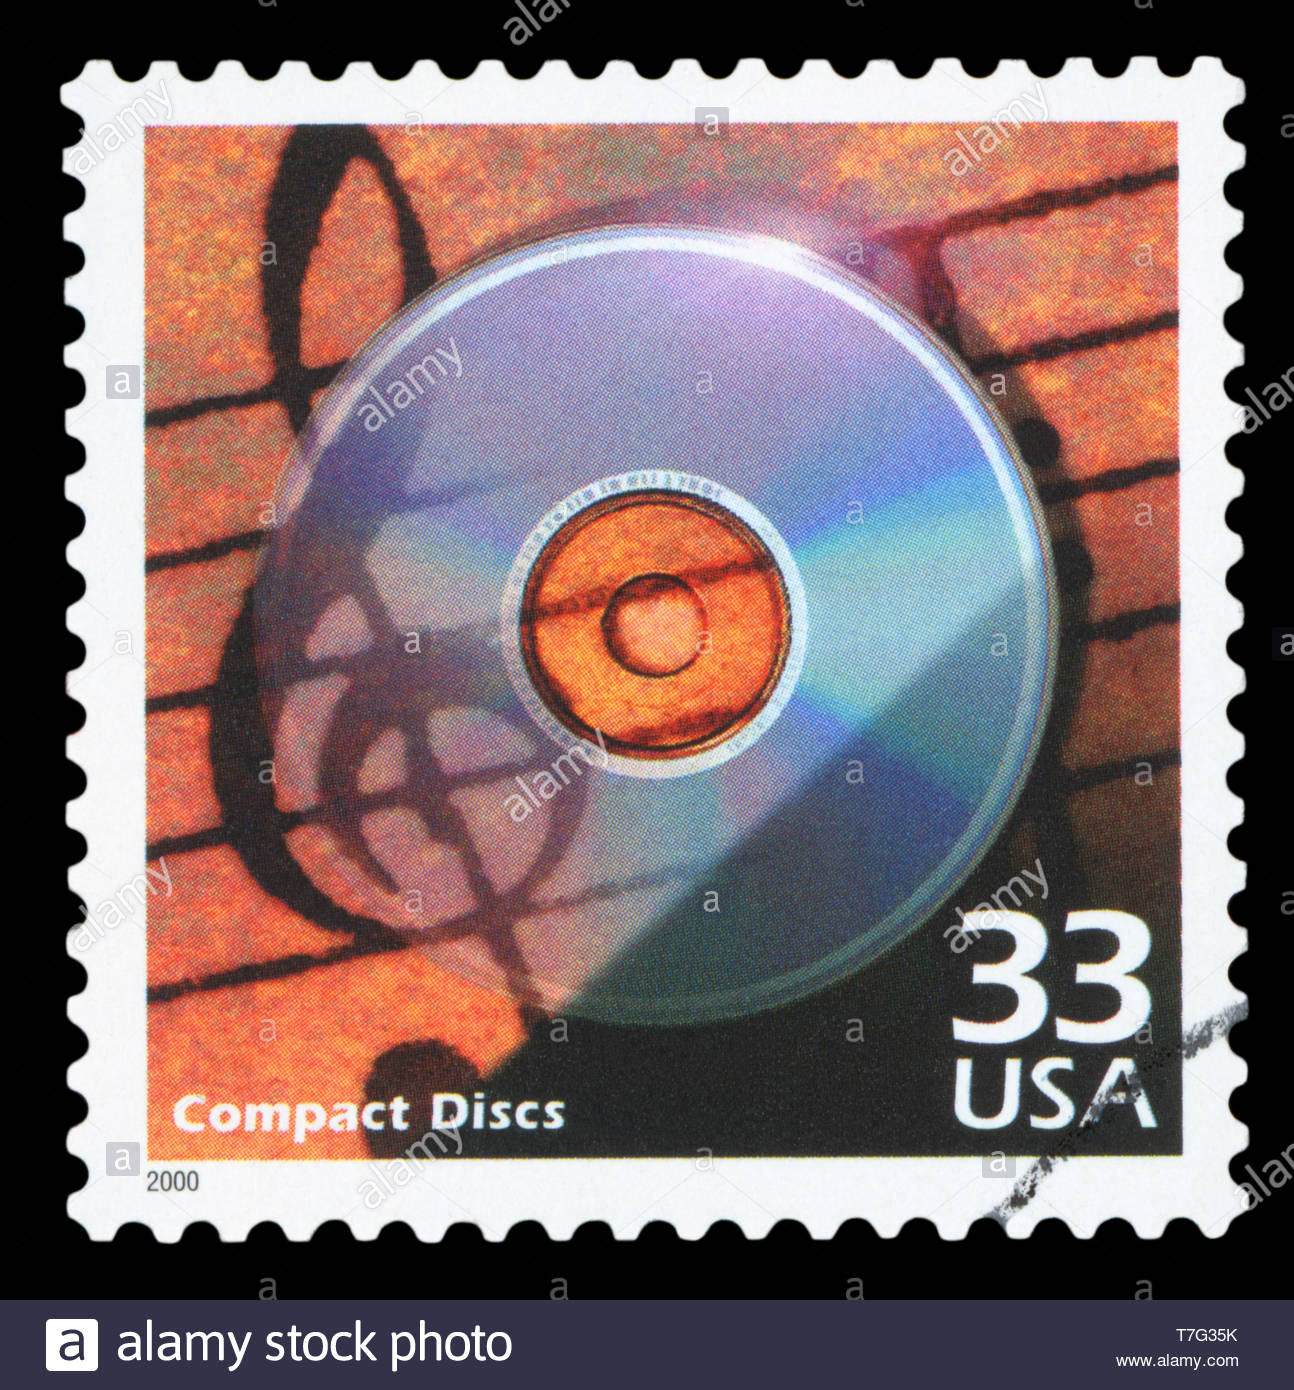 UNITED STATES OF AMERICA, CIRCA 2000: a postage stamp printed in USA showing an image of a compact disc, circa 2000. - Stock Image